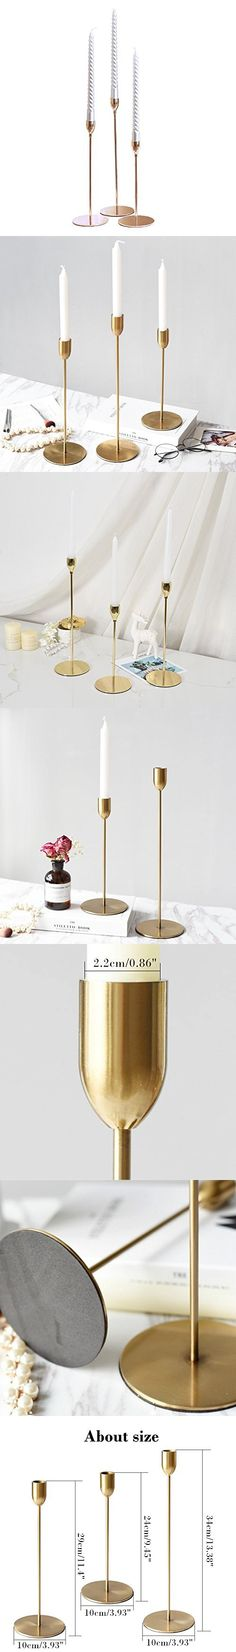 2 PCS Candle Holders for Candlesticks Christmas Iron Candle Holders Stand Candle Holder Vintage for Pillar Candles Candle Holders for Long Candles for Living Room//Dinning Room Table Decoration 3.1